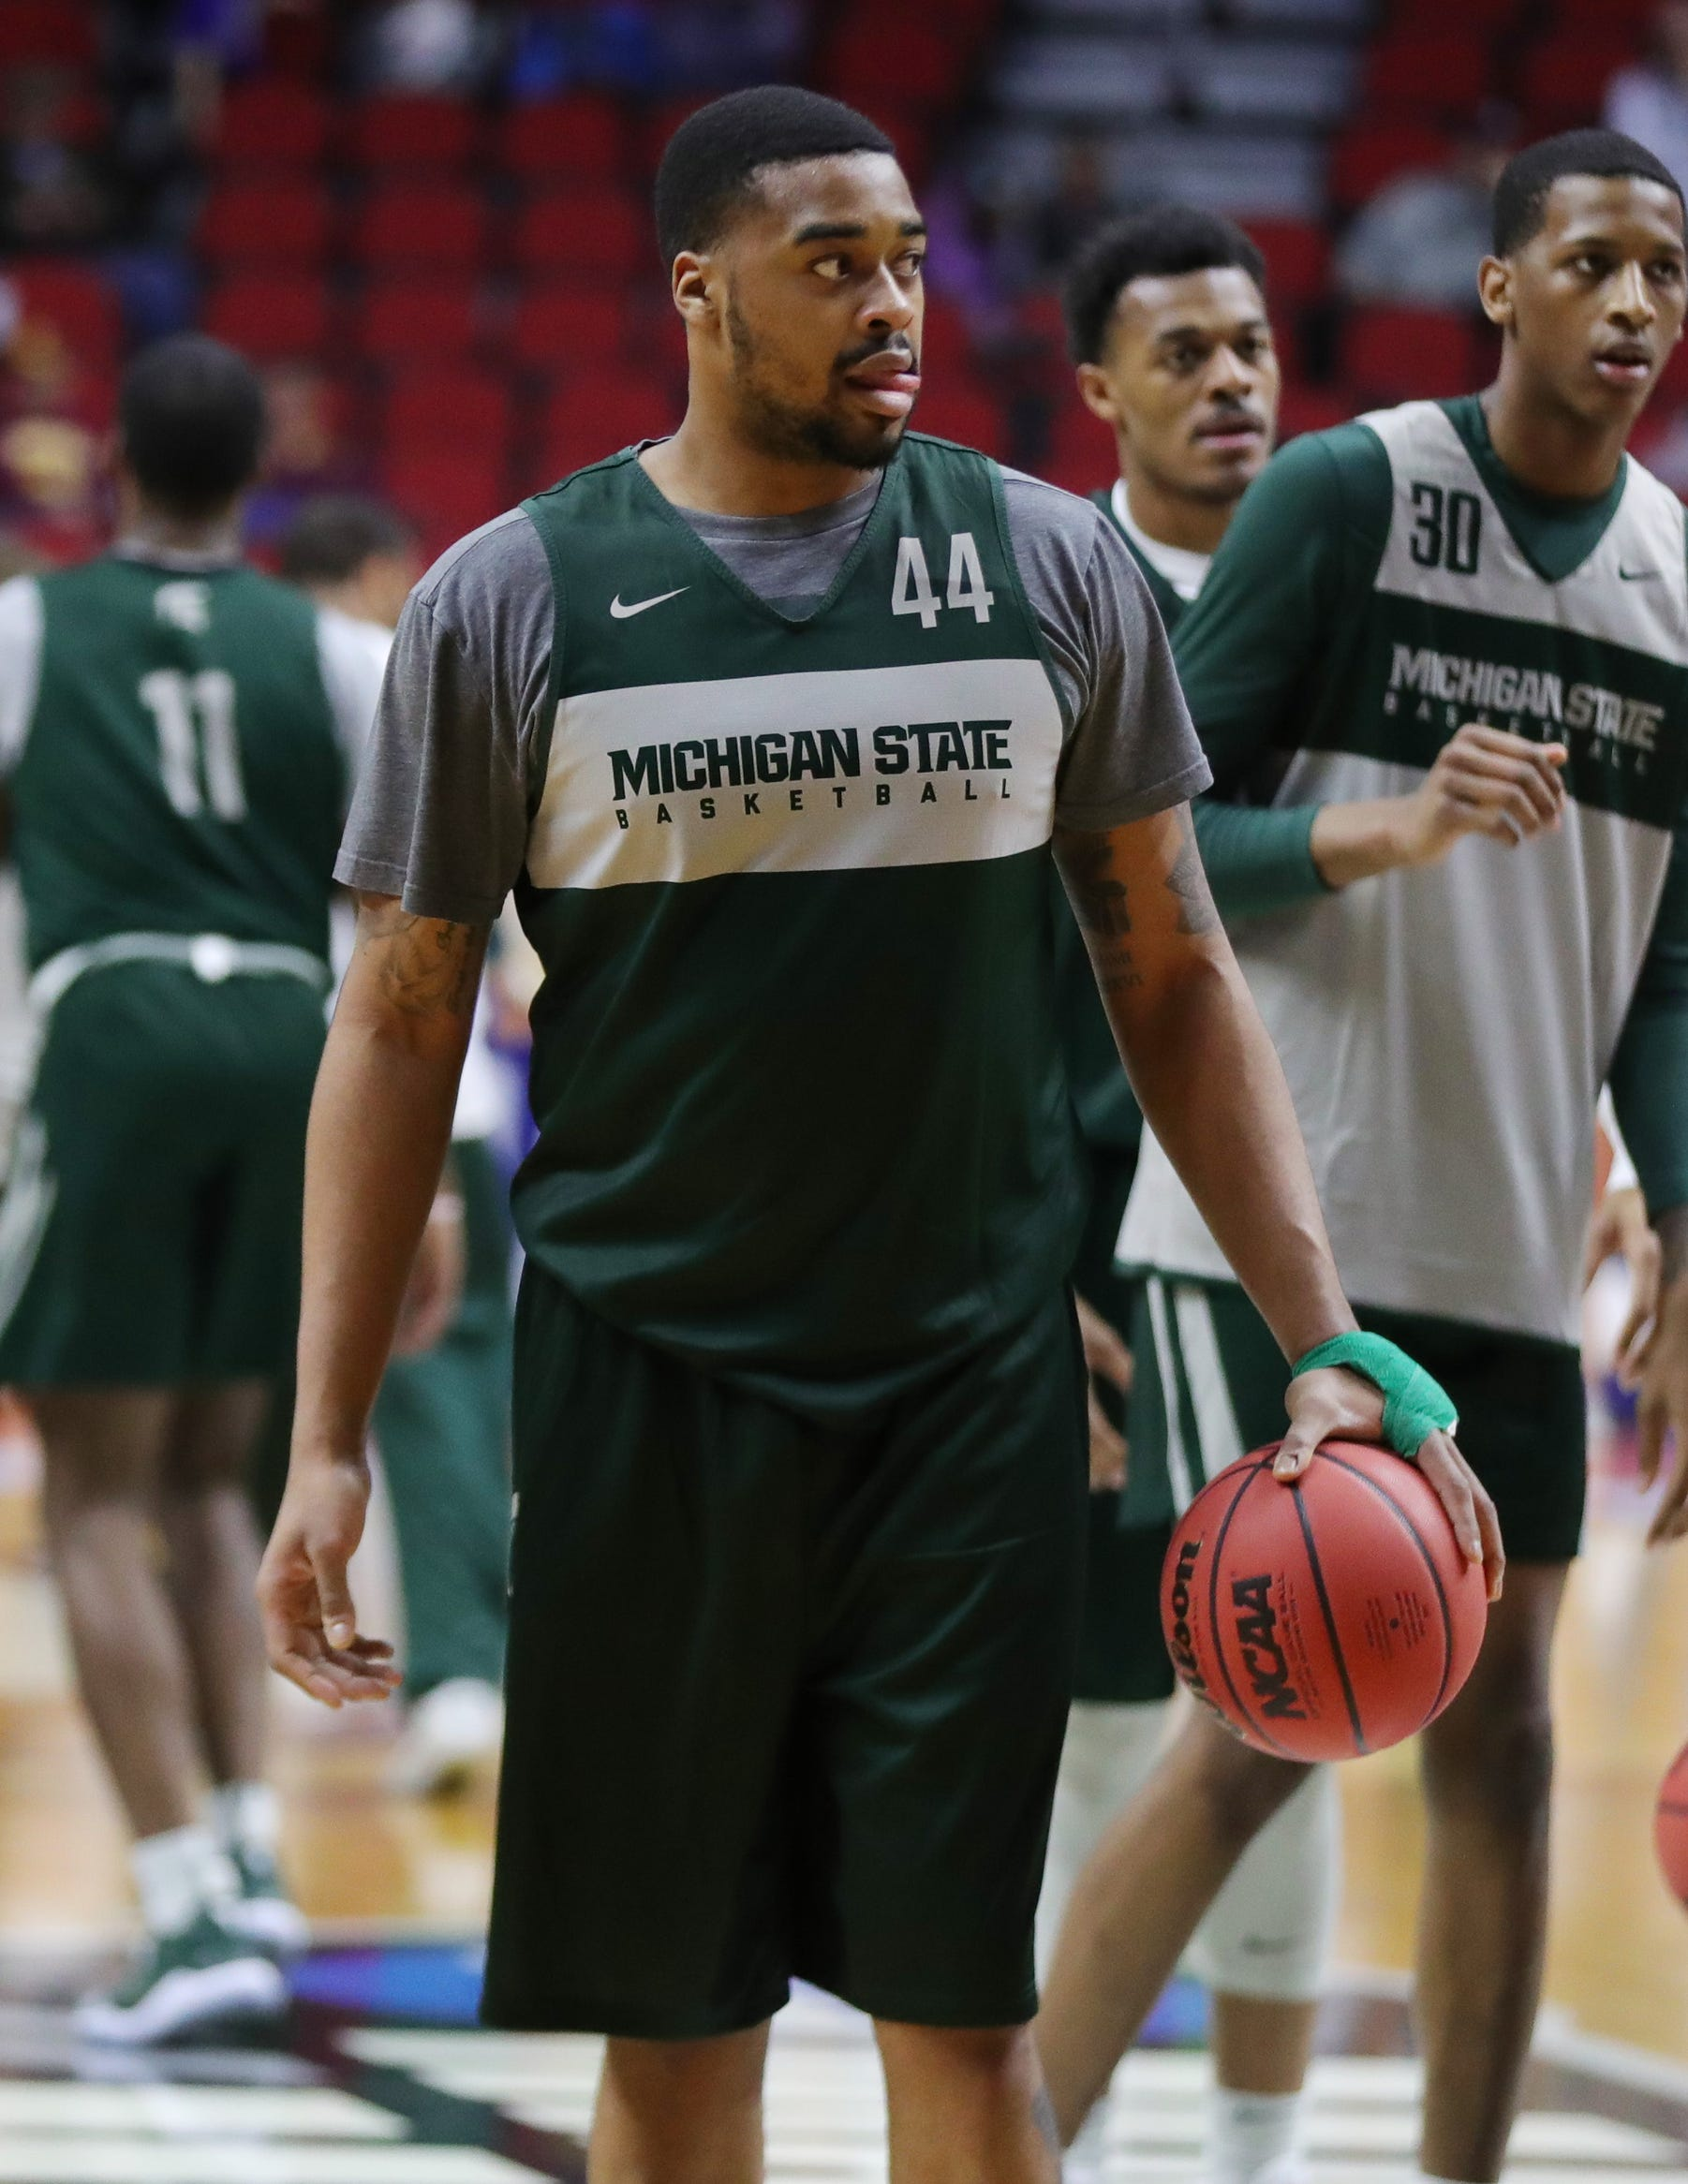 Michigan State forward Nick Ward goes through drills as his team prepares for the first-round NCAA tournament game against Michigan State on Wednesday, March 20, 2019 at Wells Fargo Arena in Des Moines, Iowa.